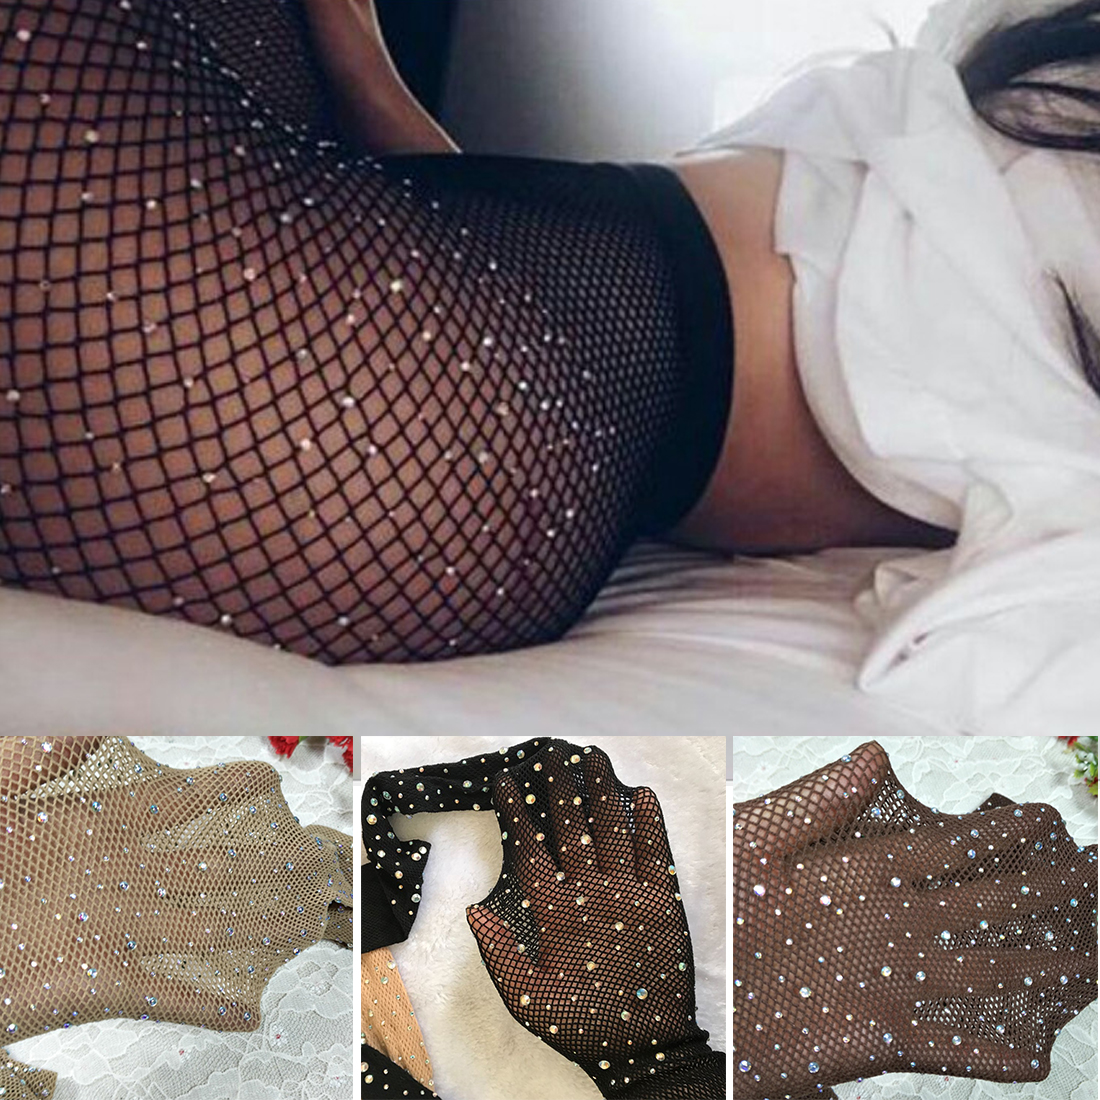 Women's Sexy Fishnet Stockings Open Crotch Mesh Tights Shiny Rhinestone Nylons Stockings Black Erotic Lingerie Collant image